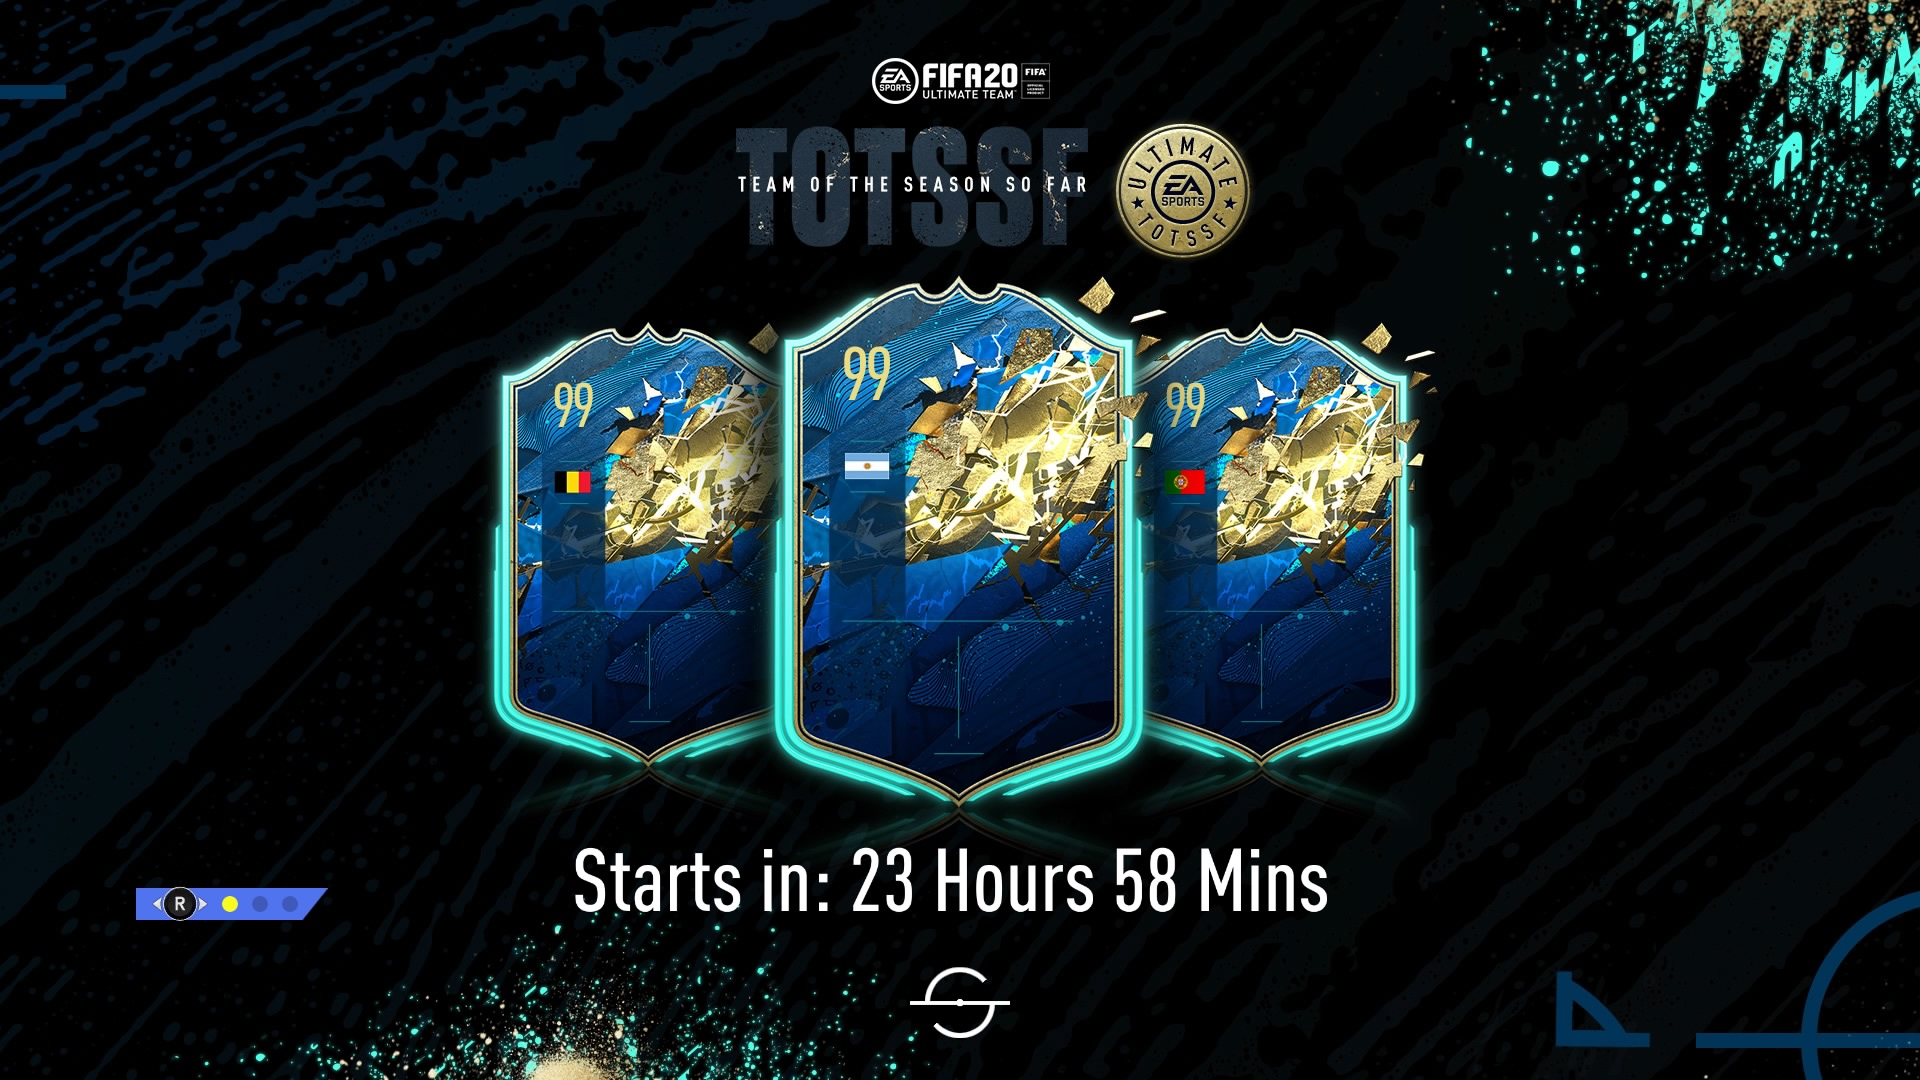 The FIFA 20 Ultimate Team loading screen is now teasing the final Team of the Season (TOTS) So Far squad.